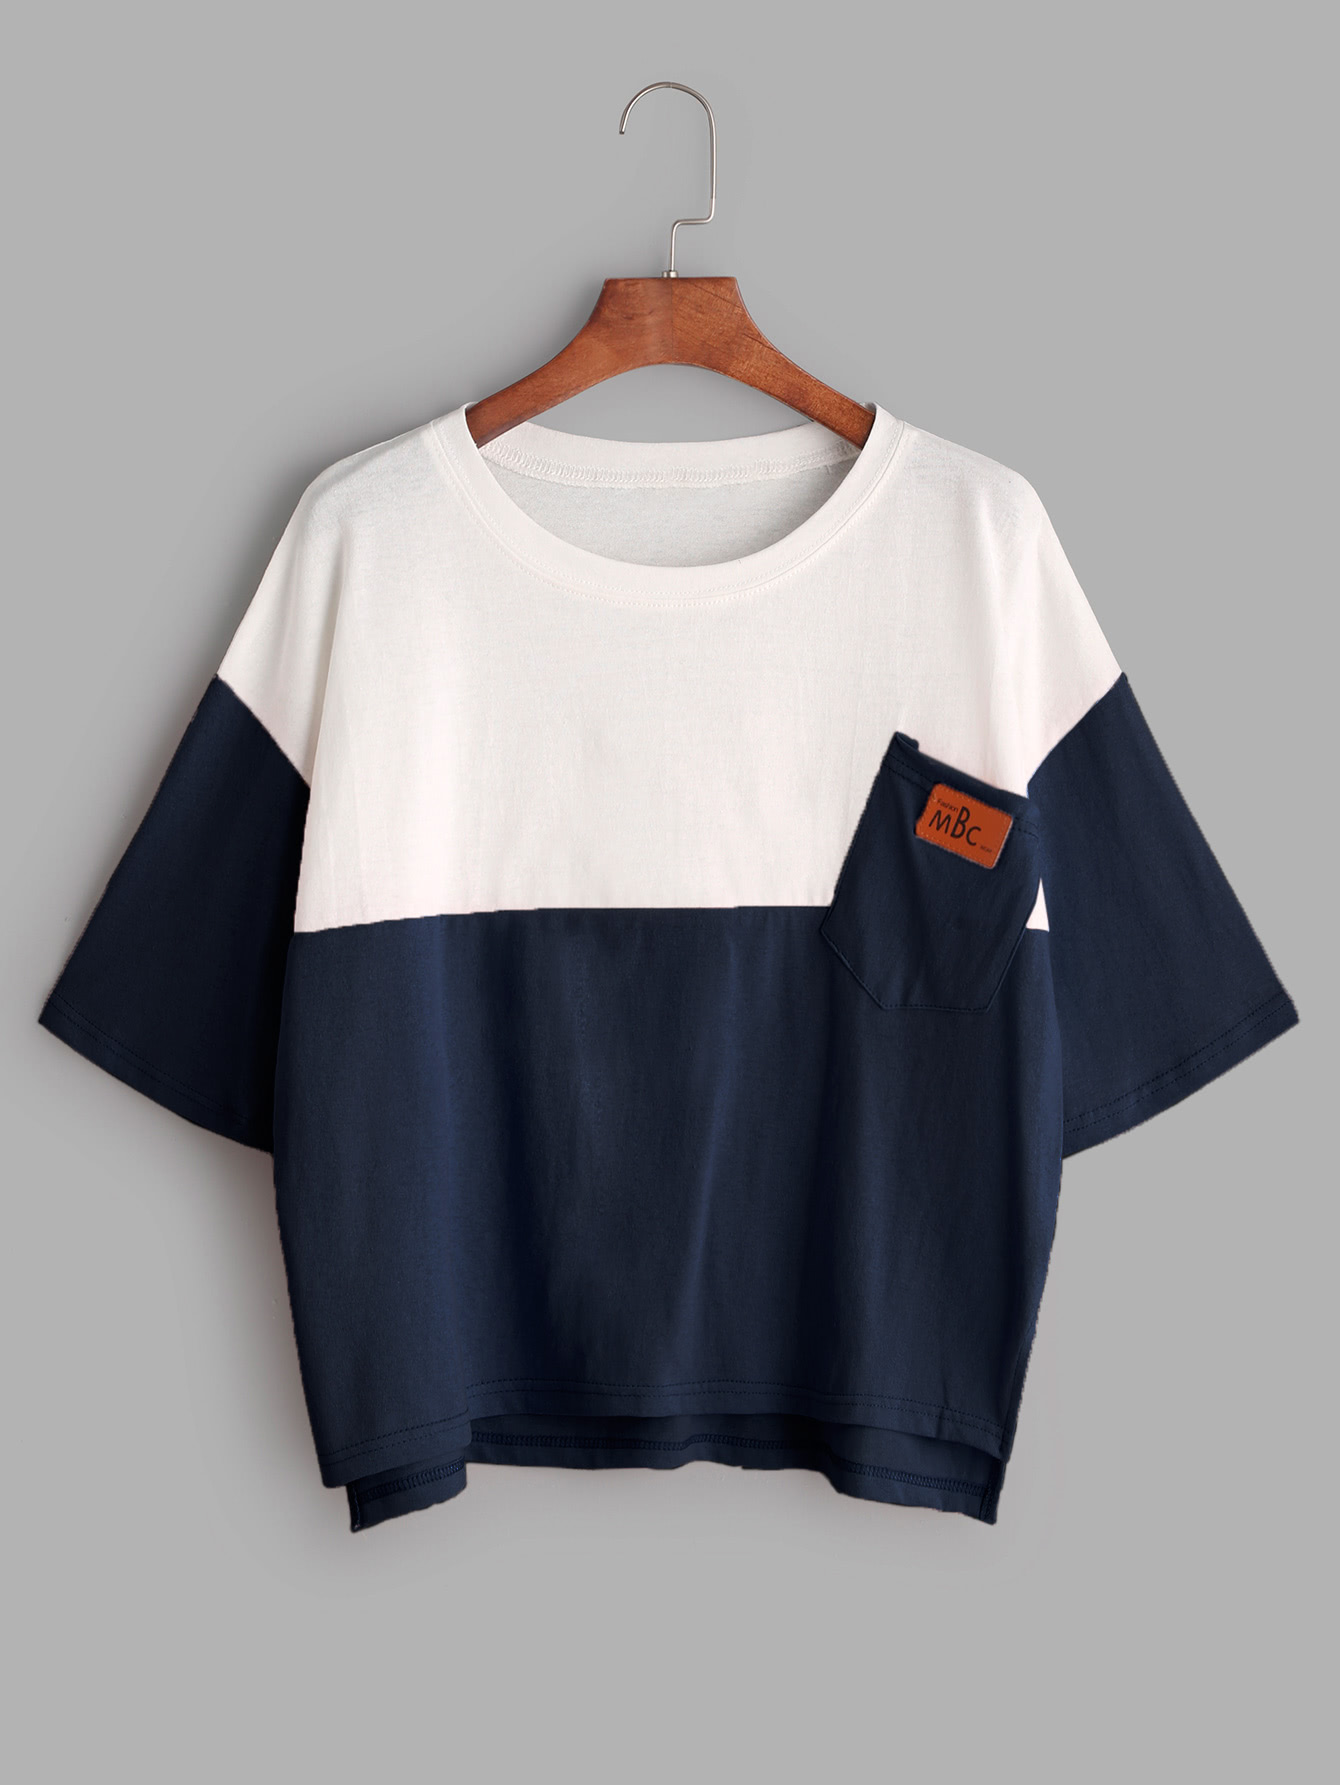 Find great deals on eBay for color block shirt. Shop with confidence.